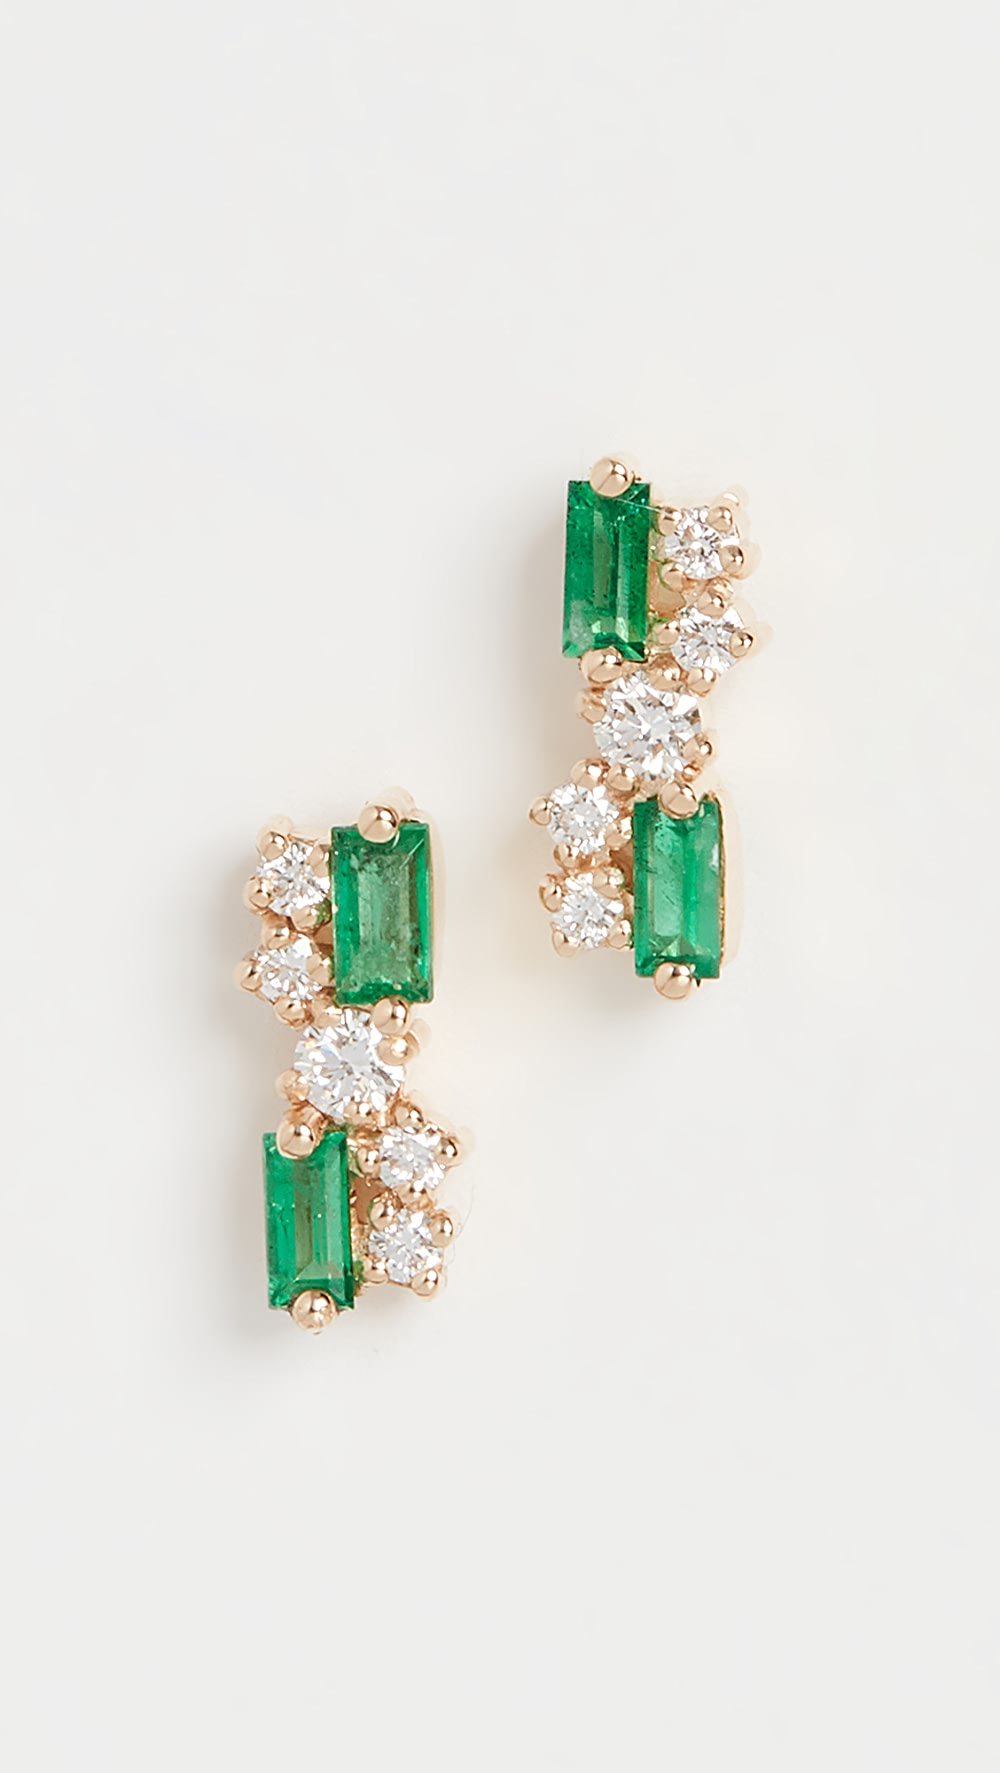 Audacious Suzanne Kalan - 18k Yellow Gold Fireworks Emerald Stud Earrings Bringing More Convenience To The People In Their Daily Life